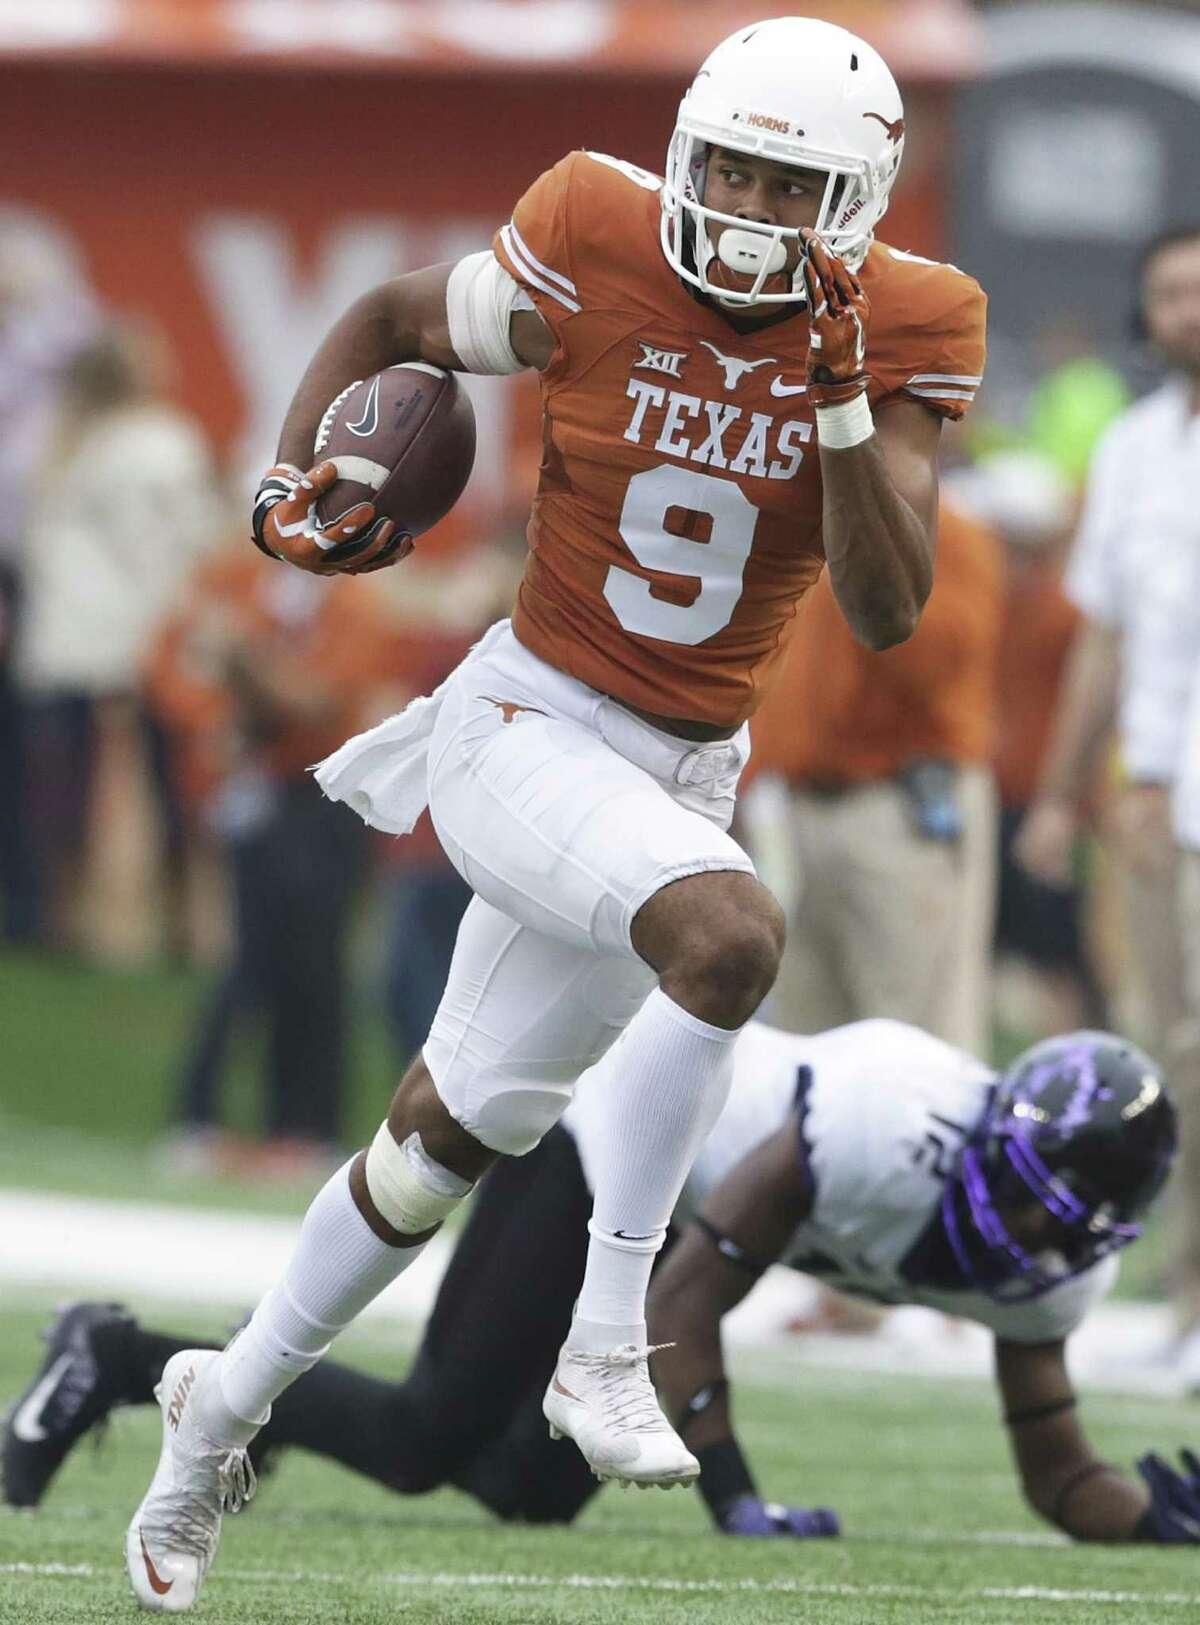 Collin Johnson heads upfield with a catch as Longhorn coach Charlie Strong leads his team against TCU at DKR Stadium on November 25, 2016.